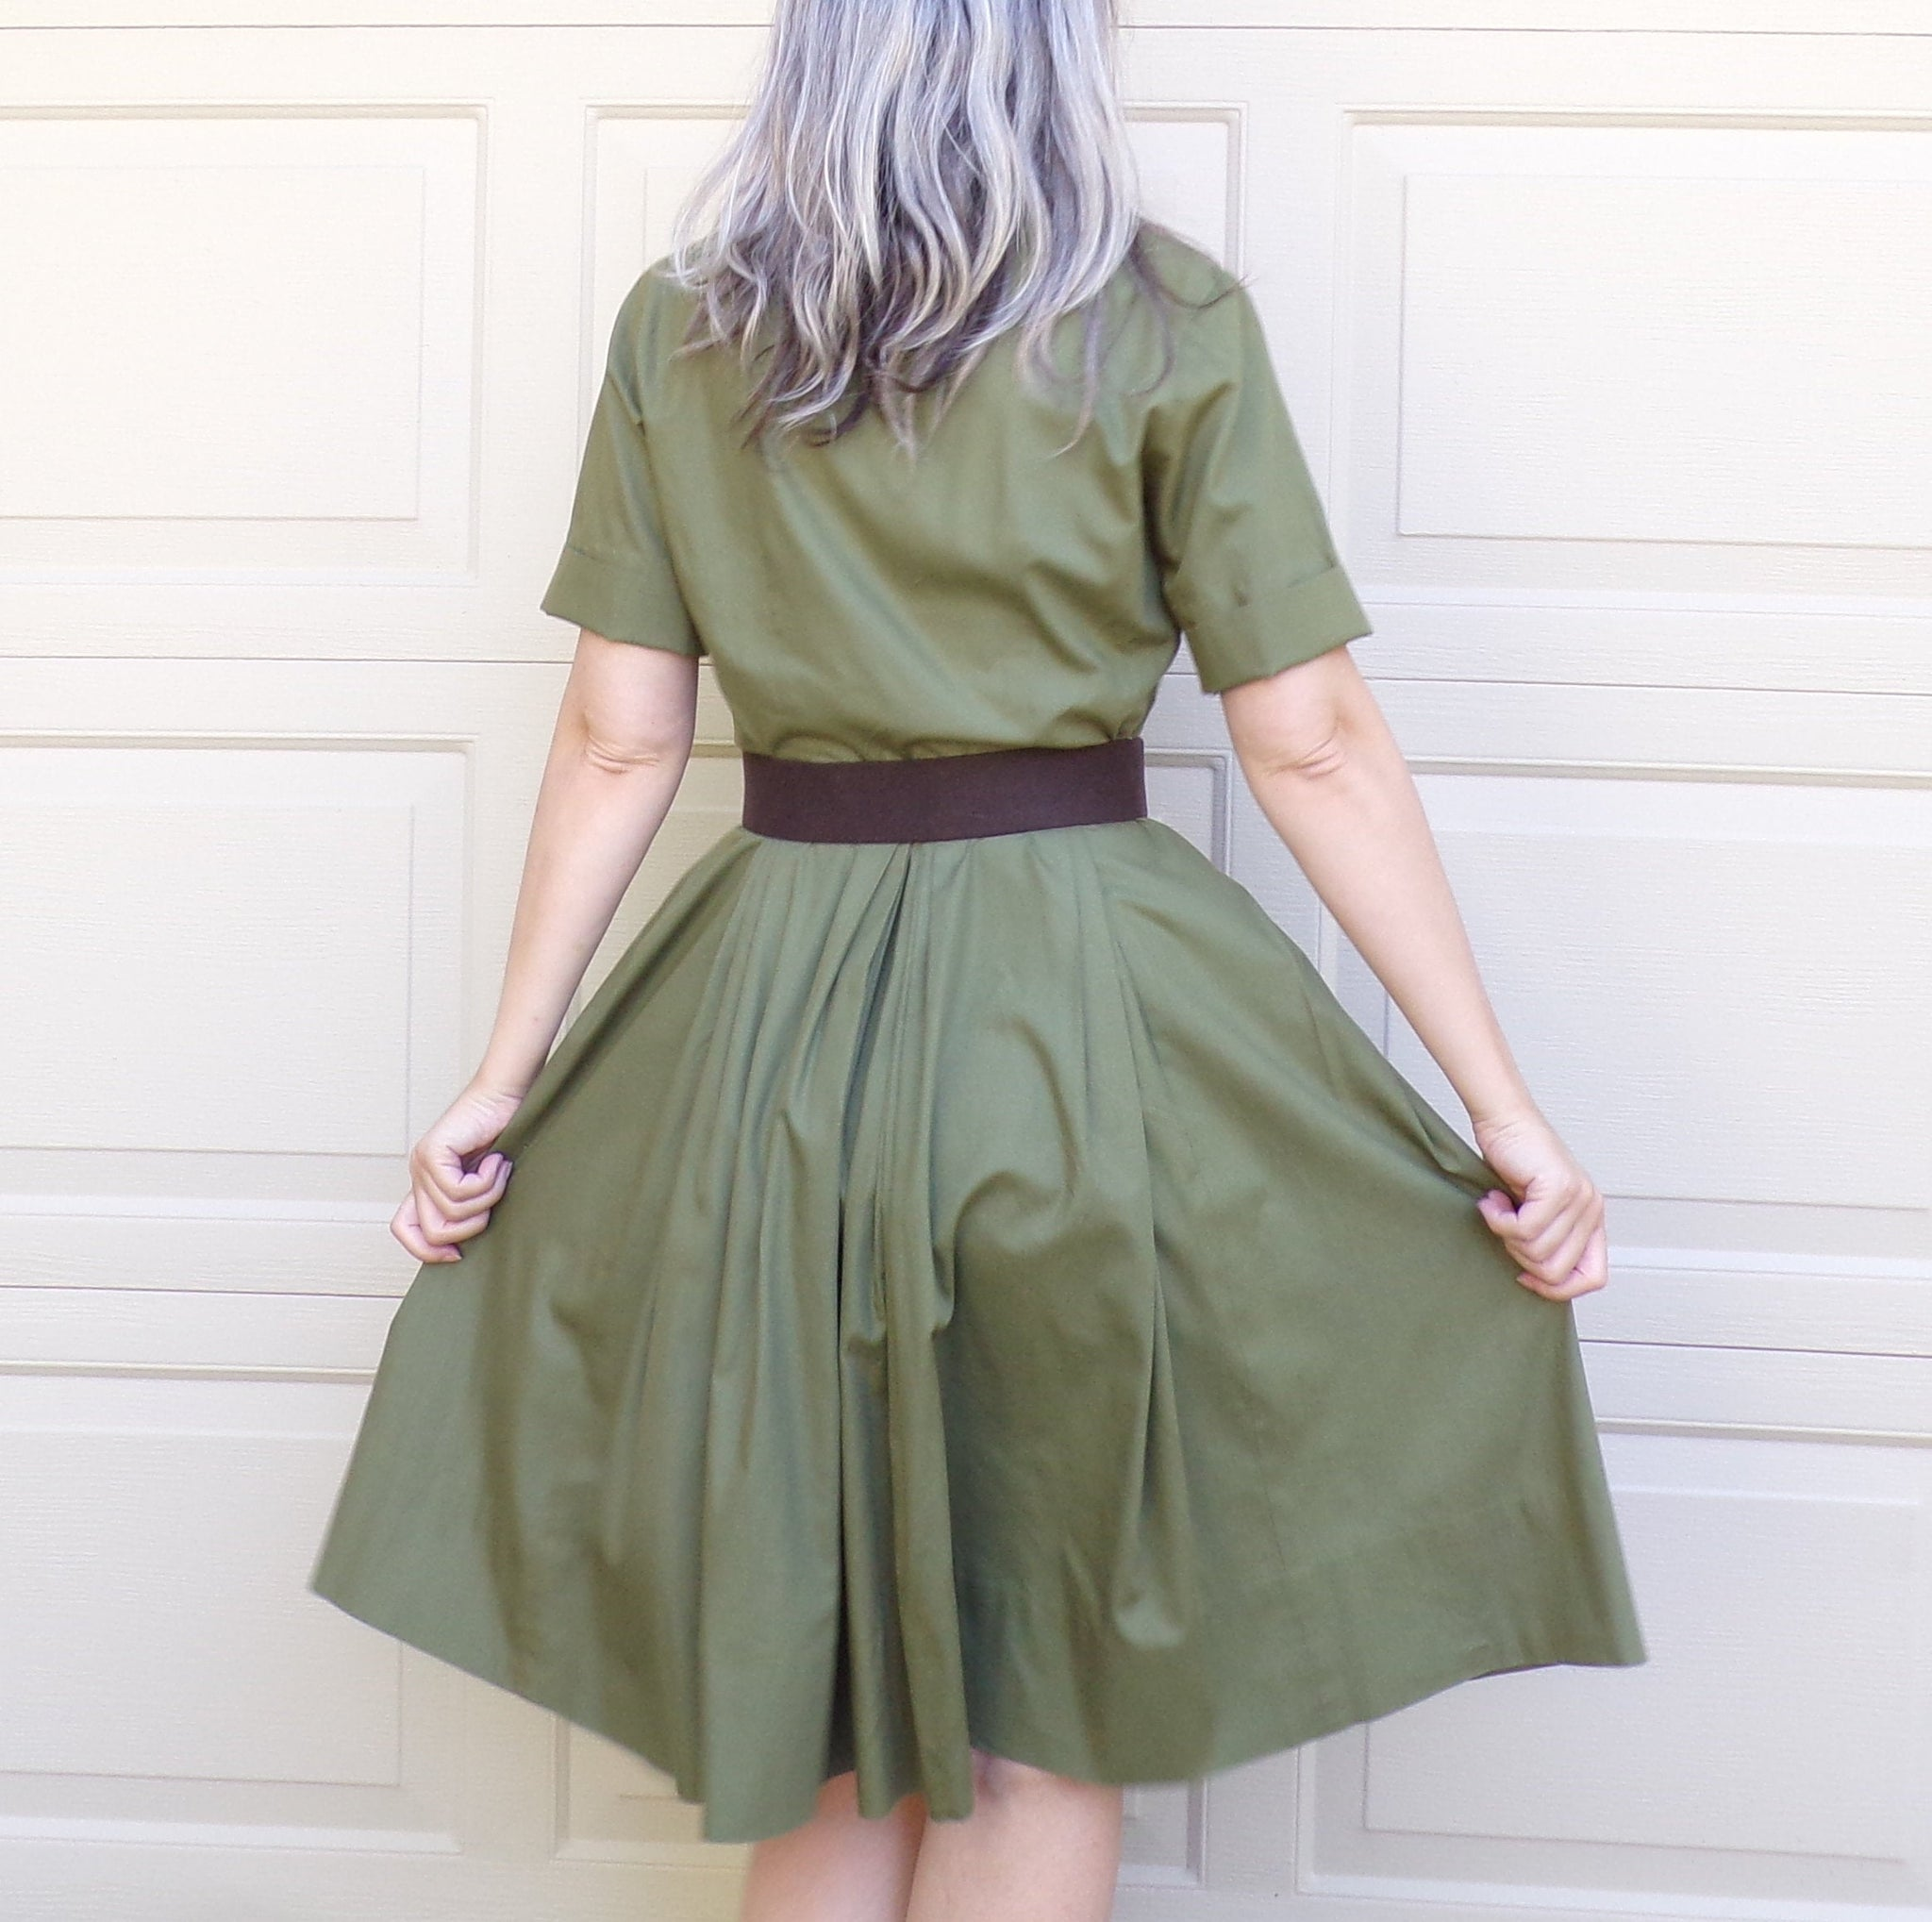 OLIVE GREEN SHIRTWAIST dress 1950's 1960's full skirt S (A8)